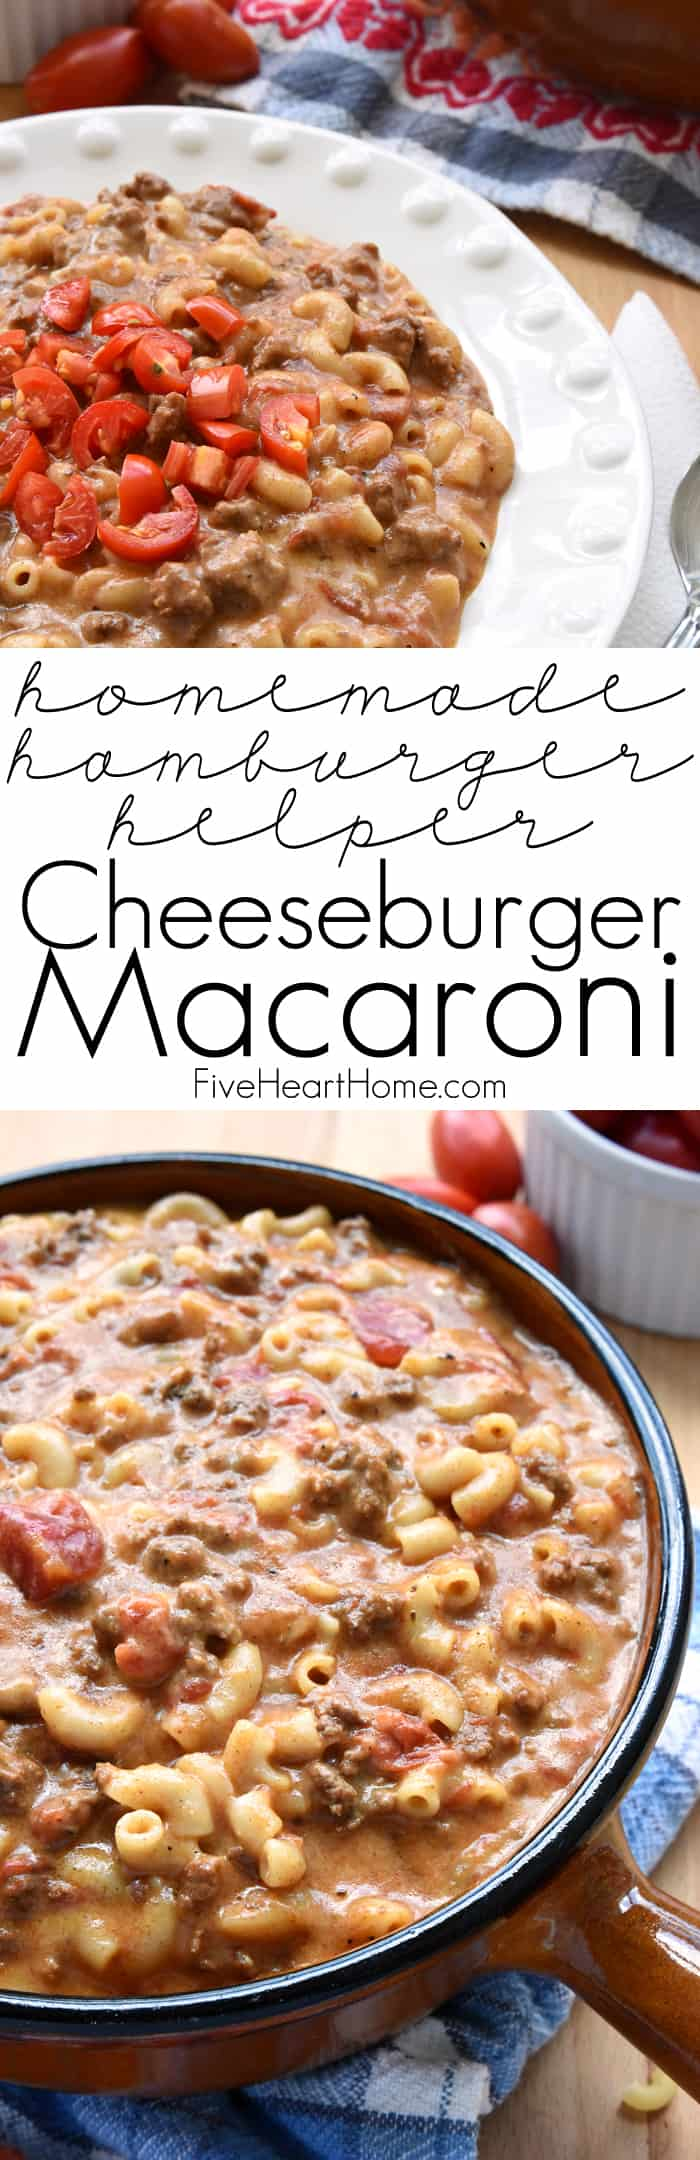 Homemade Hamburger Helper / Cheeseburger Macaroni Picture Collage with Text Overlay